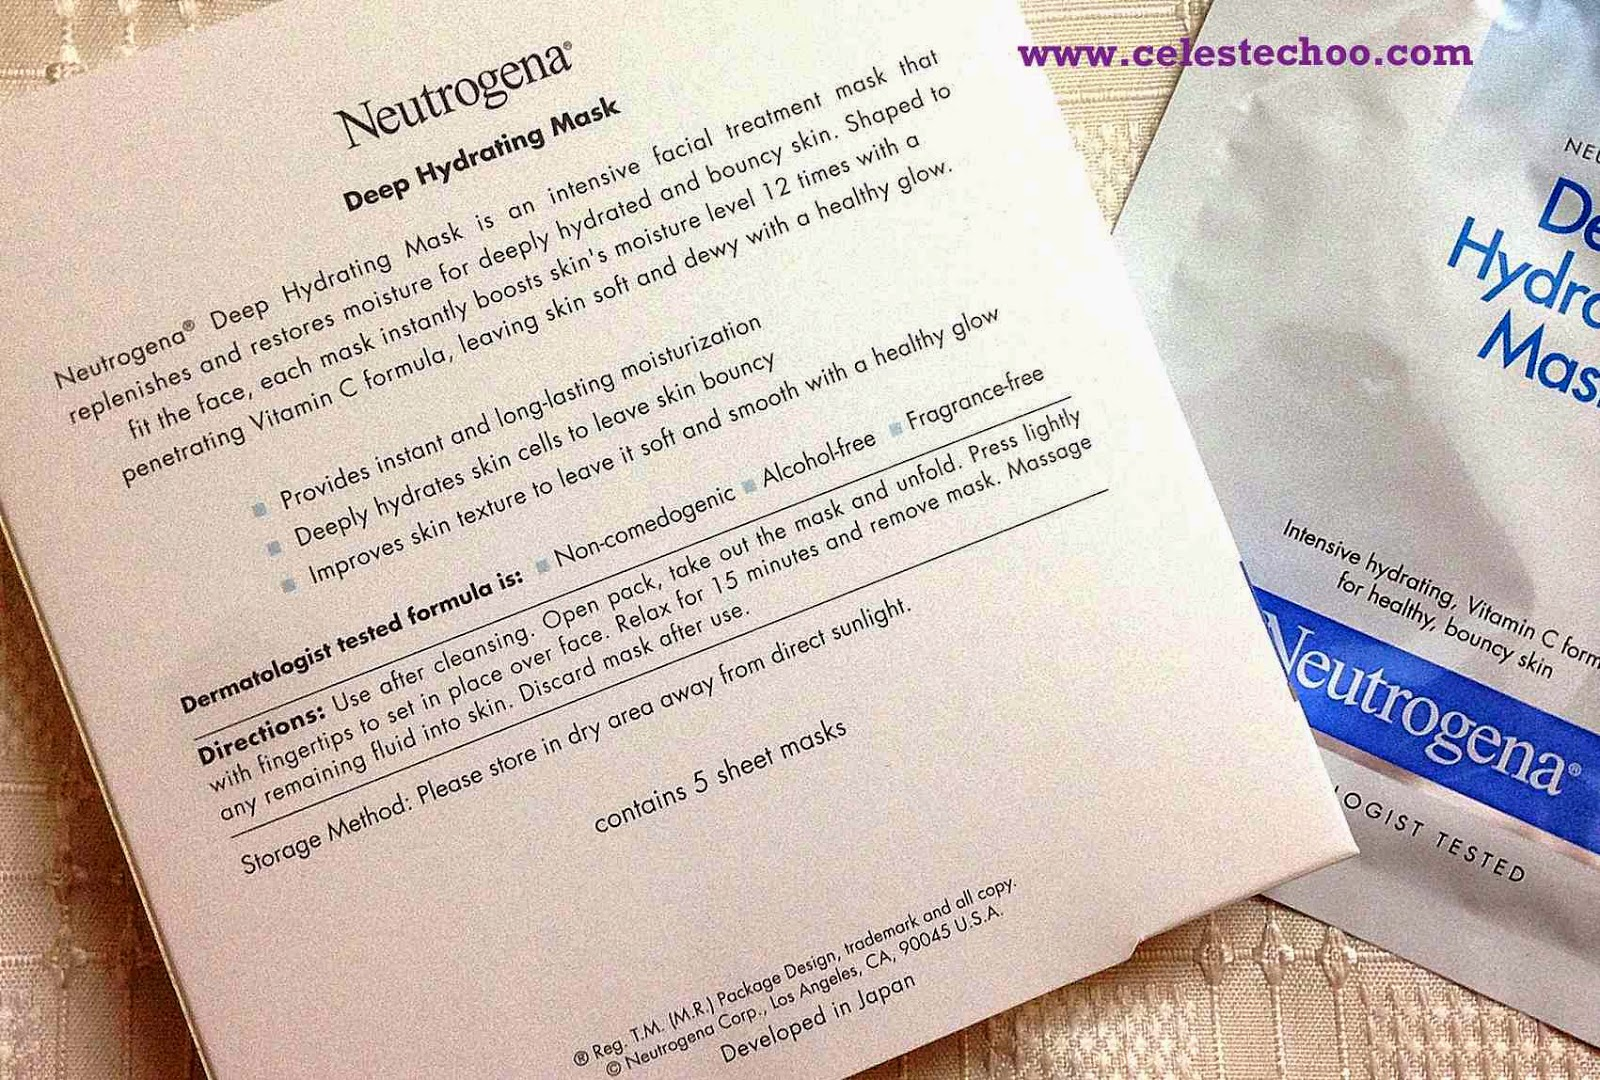 image-neutrogena-deep-hydrating-mask-skincare-product-review